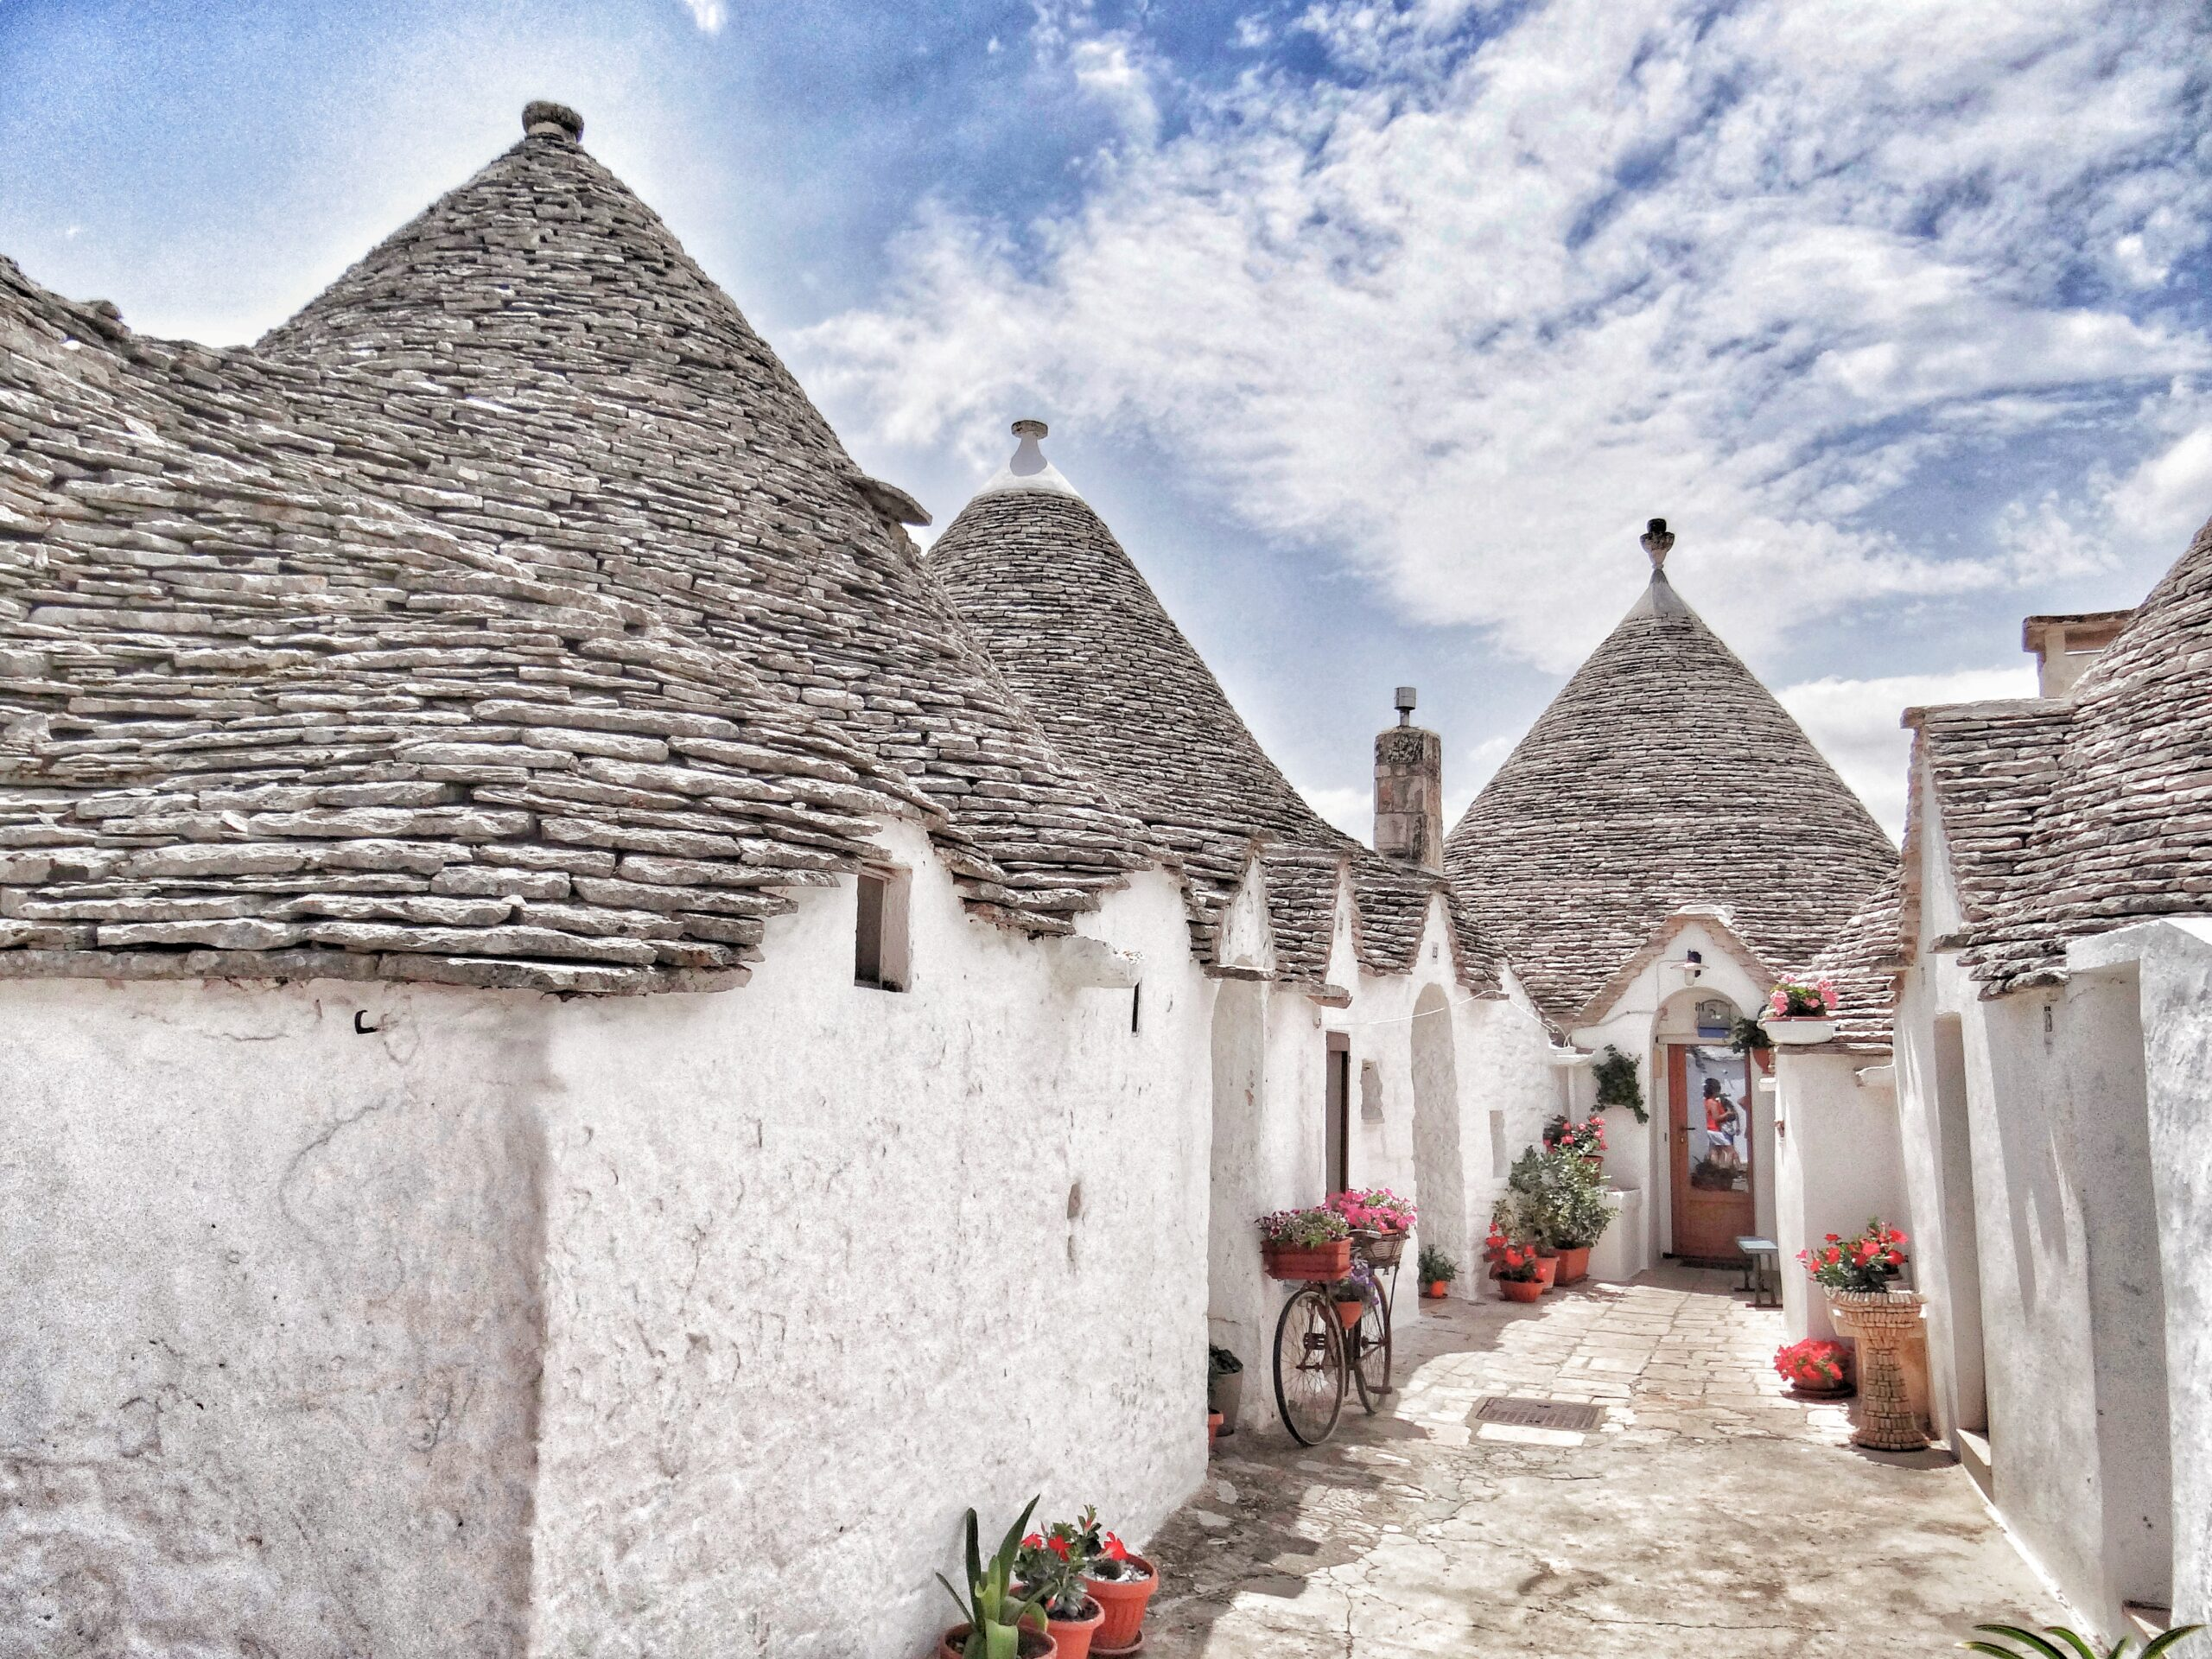 Alberobello is one of Puglia's most visited destinations - the Big Gay Podcast from Puglia guide to Alberobello